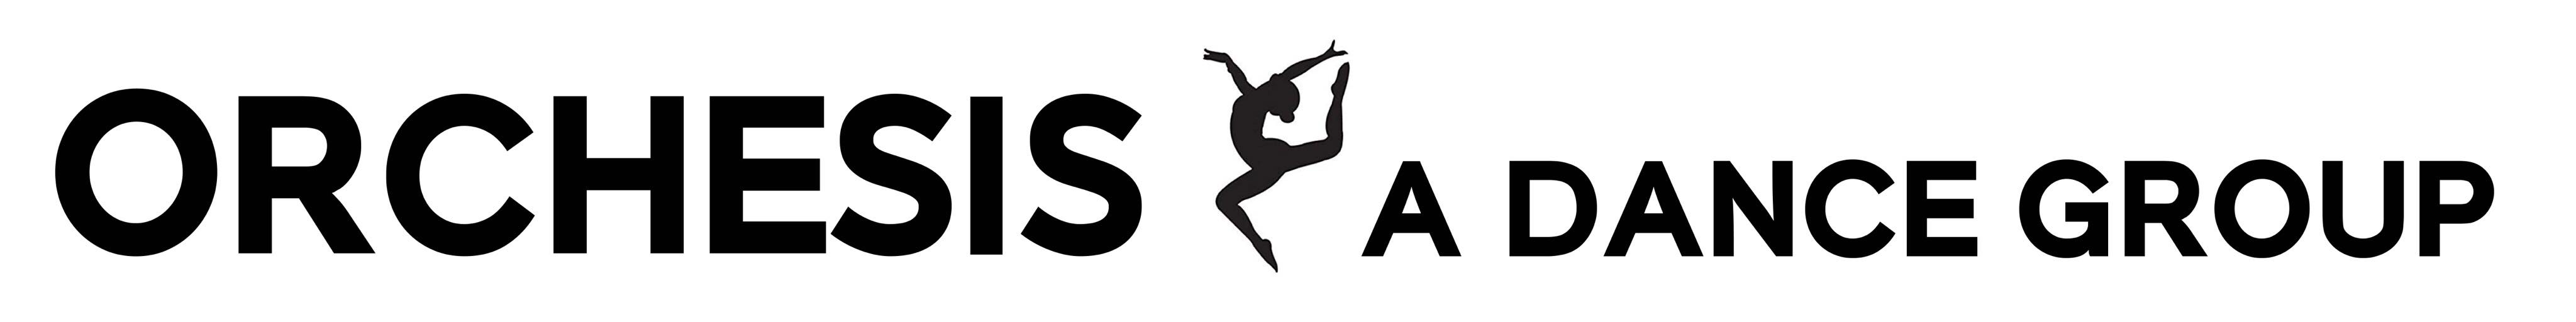 Orchesis: A Dance Group logo